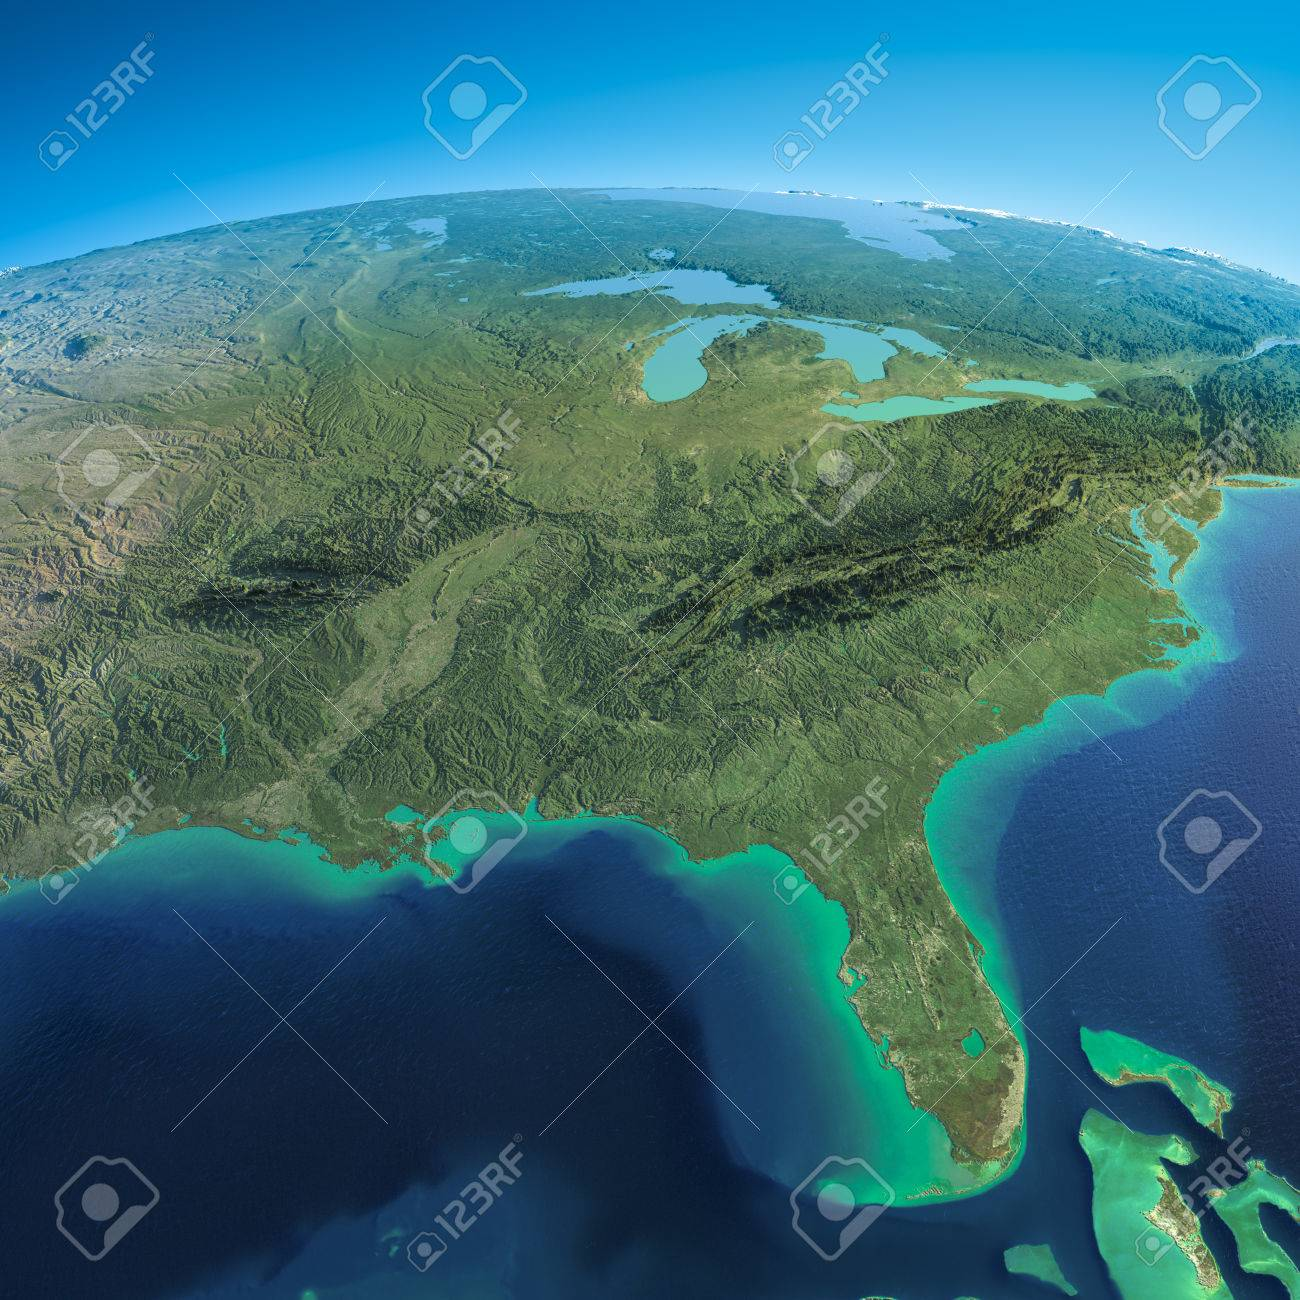 Highly detailed planet Earth in the morning Exaggerated precise relief lit morning sun Detailed Earth Gulf of Mexico and Florida - 26594834